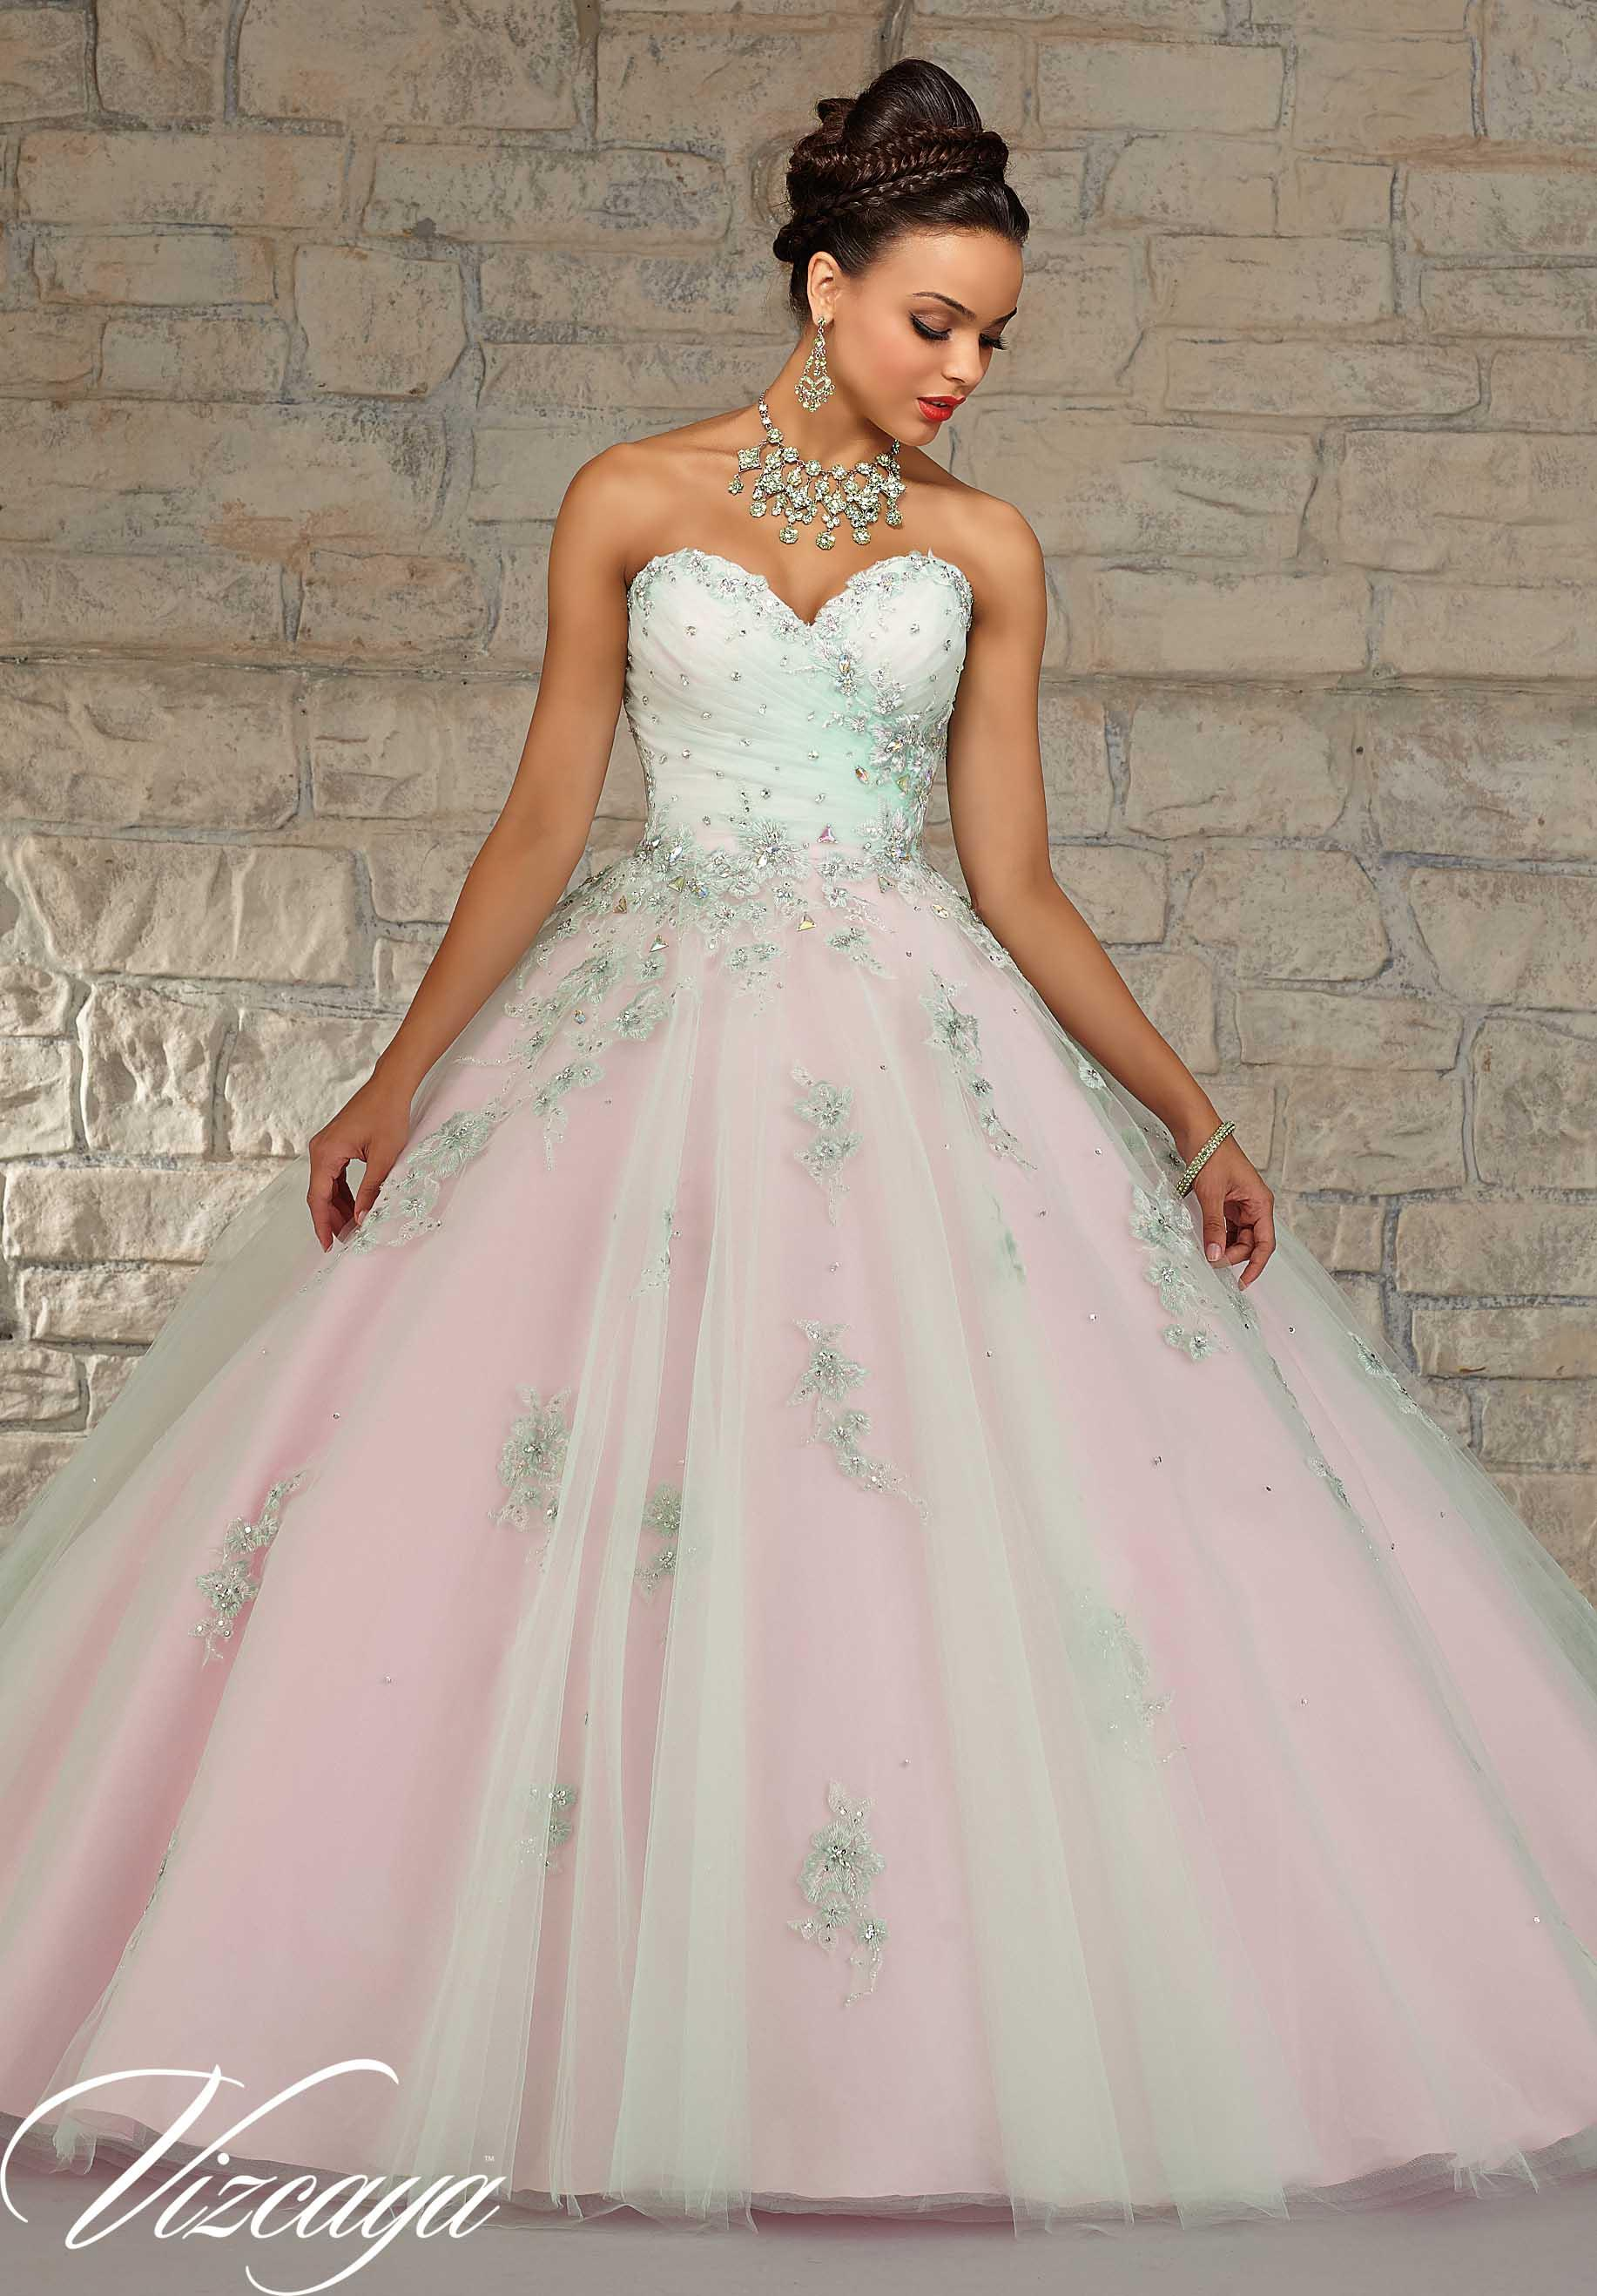 Bridal Gowns El Paso : Plus size wedding dresses el paso tx prom stores